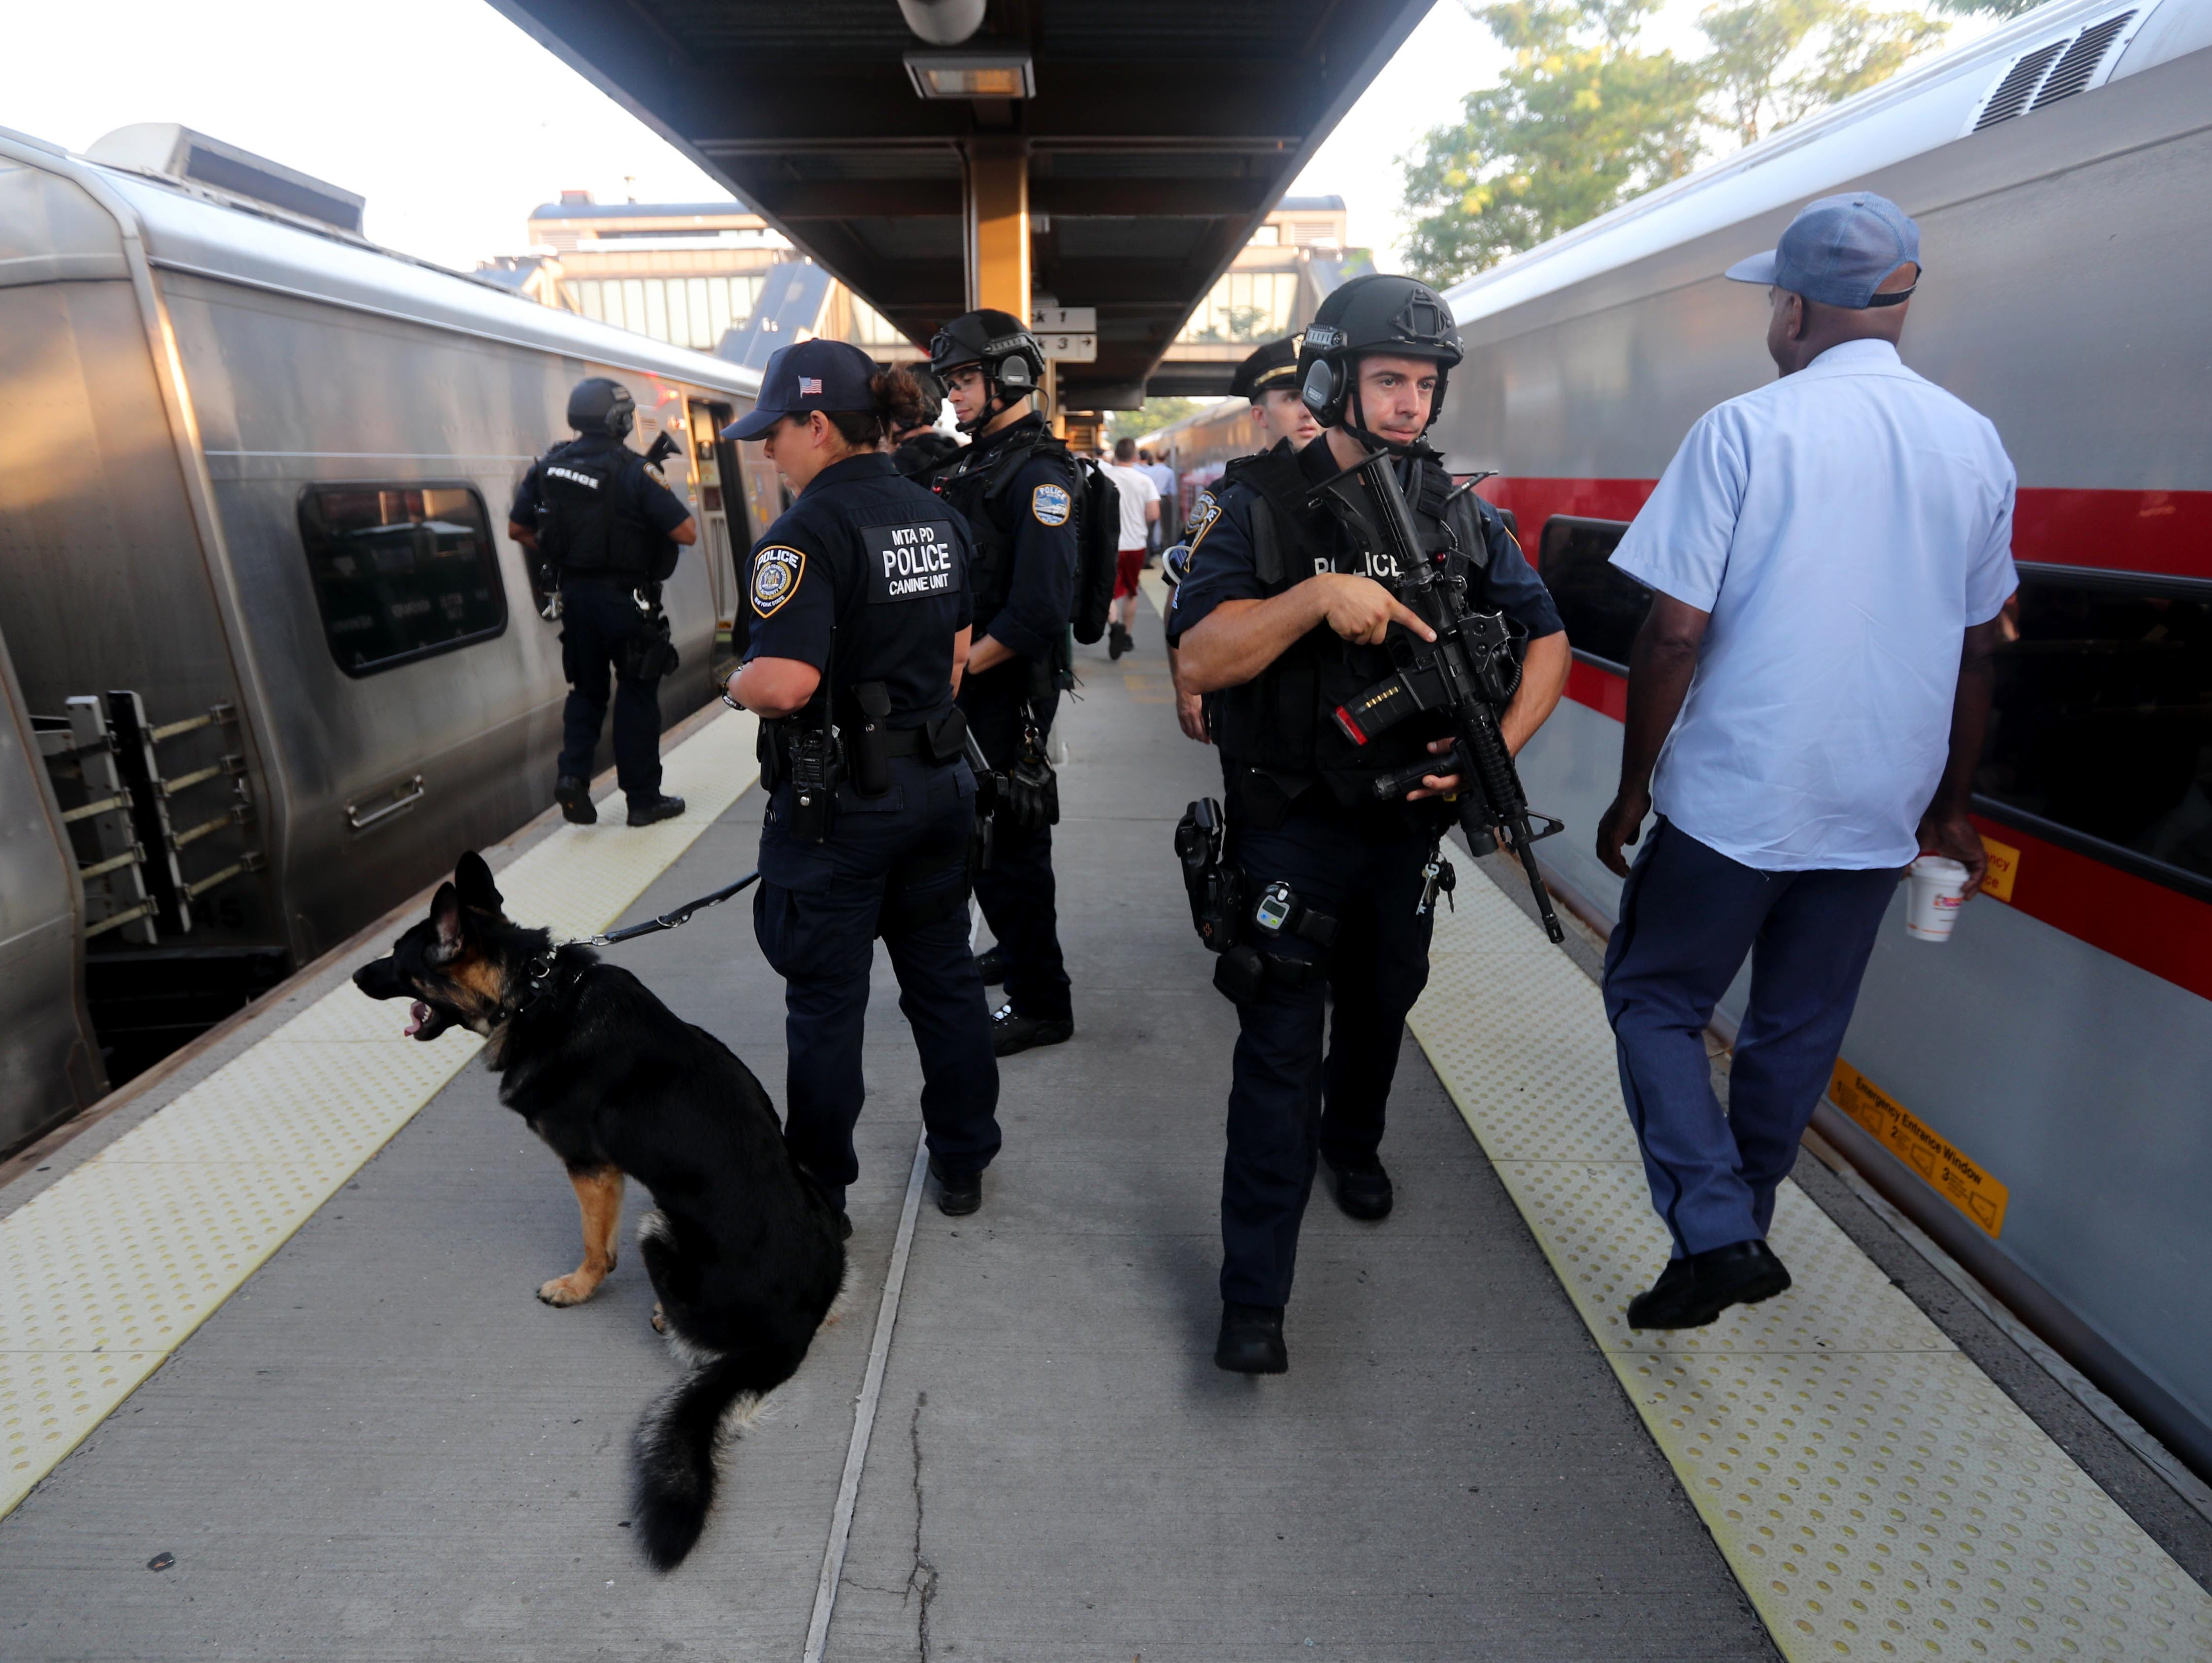 Police officers stand on the platform at the Croton-Harmon station during a multi-department safety drill Aug. 28, 2018. Officers from the MTA, Amtrak, Croton Harmon, New York State Police, TSA, and Department of Homeland Security departments took part in the drill during the morning rush hour. The drill involved heightened platform patrols, increased security presence onboard trains, explosives detection canine sweeps, and counter-surveillance measures. Similar drills were also held at several other Hudson Line stations during the morning commute.